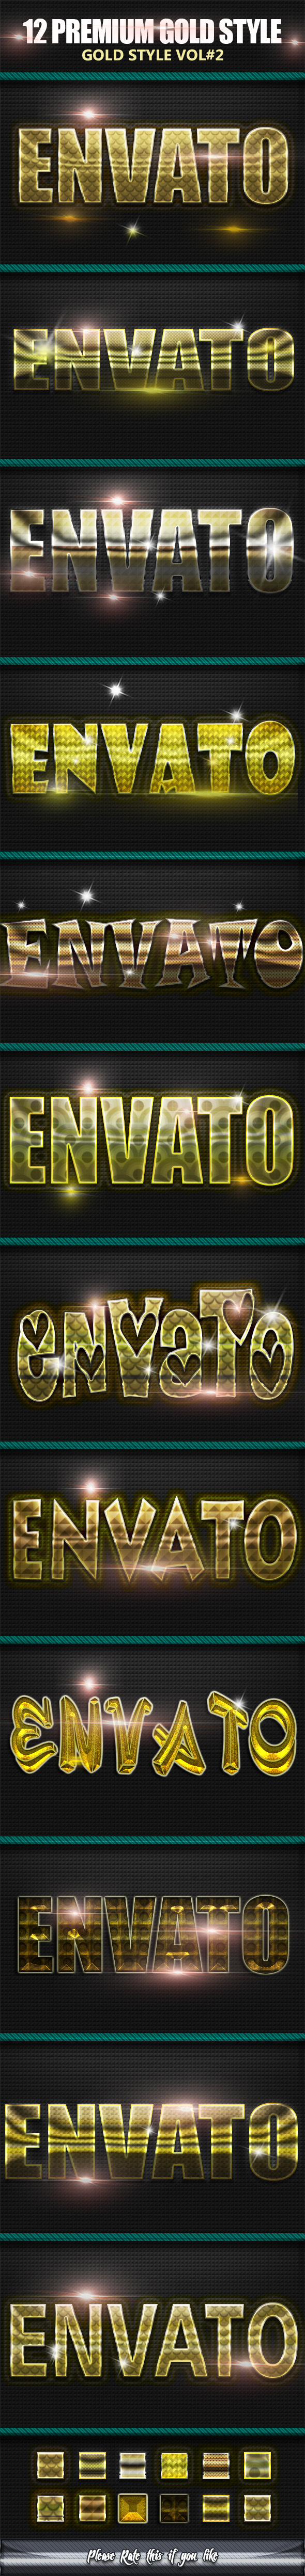 12 Gold Styles Text Photoshop vol6 - Text Effects Styles